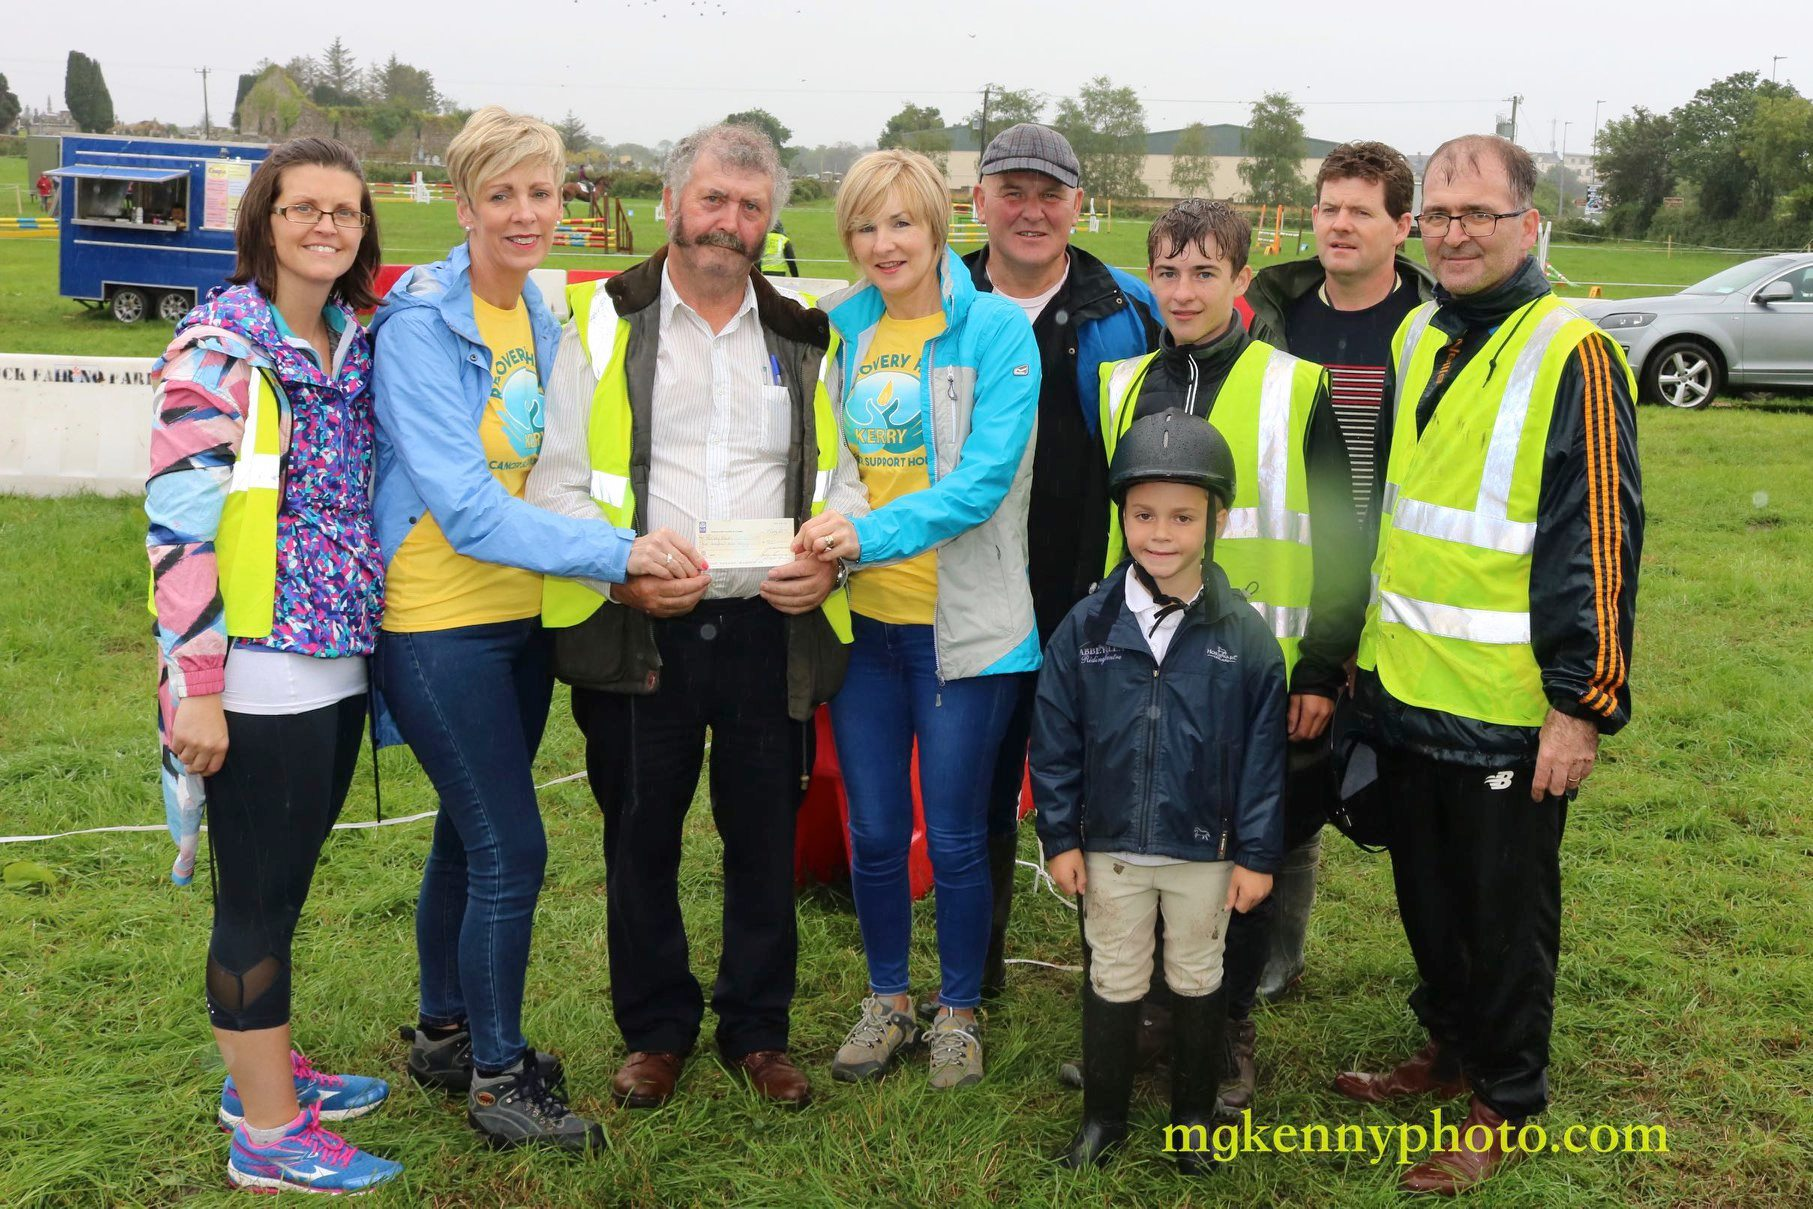 Thank you to Committee of Killorglin Pon